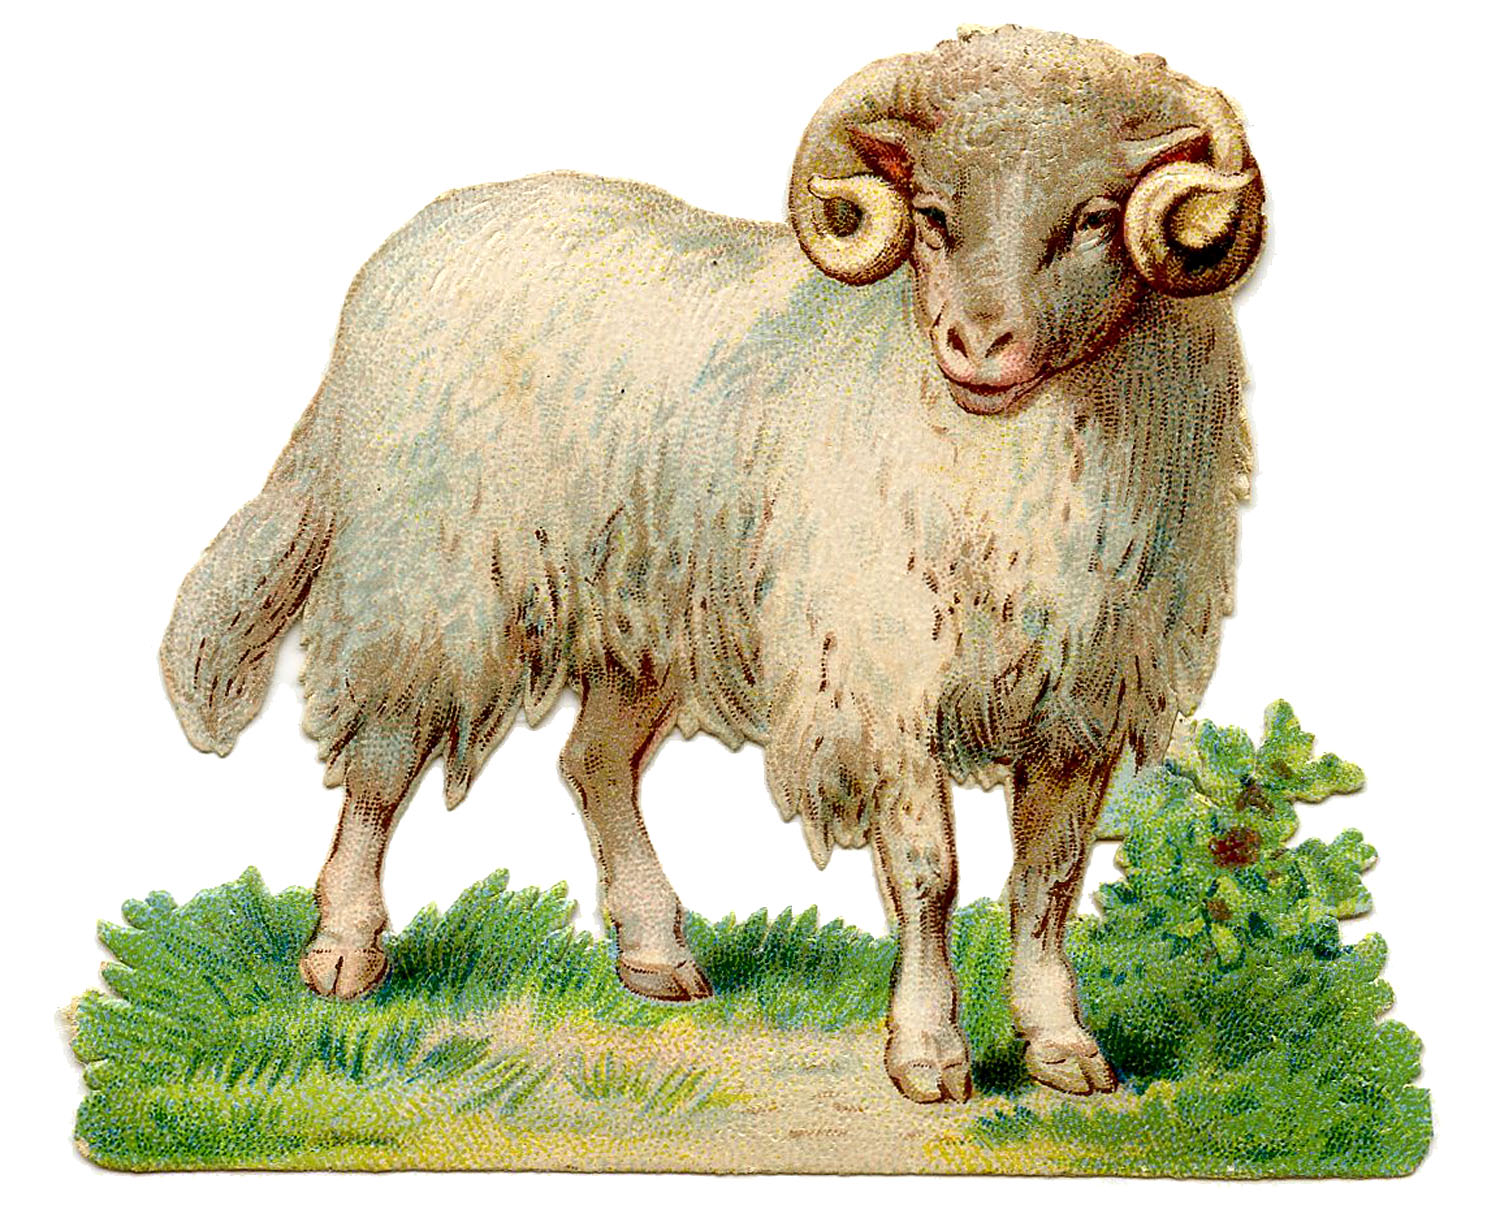 Lamb clipart vintage. Sheep image curly horns